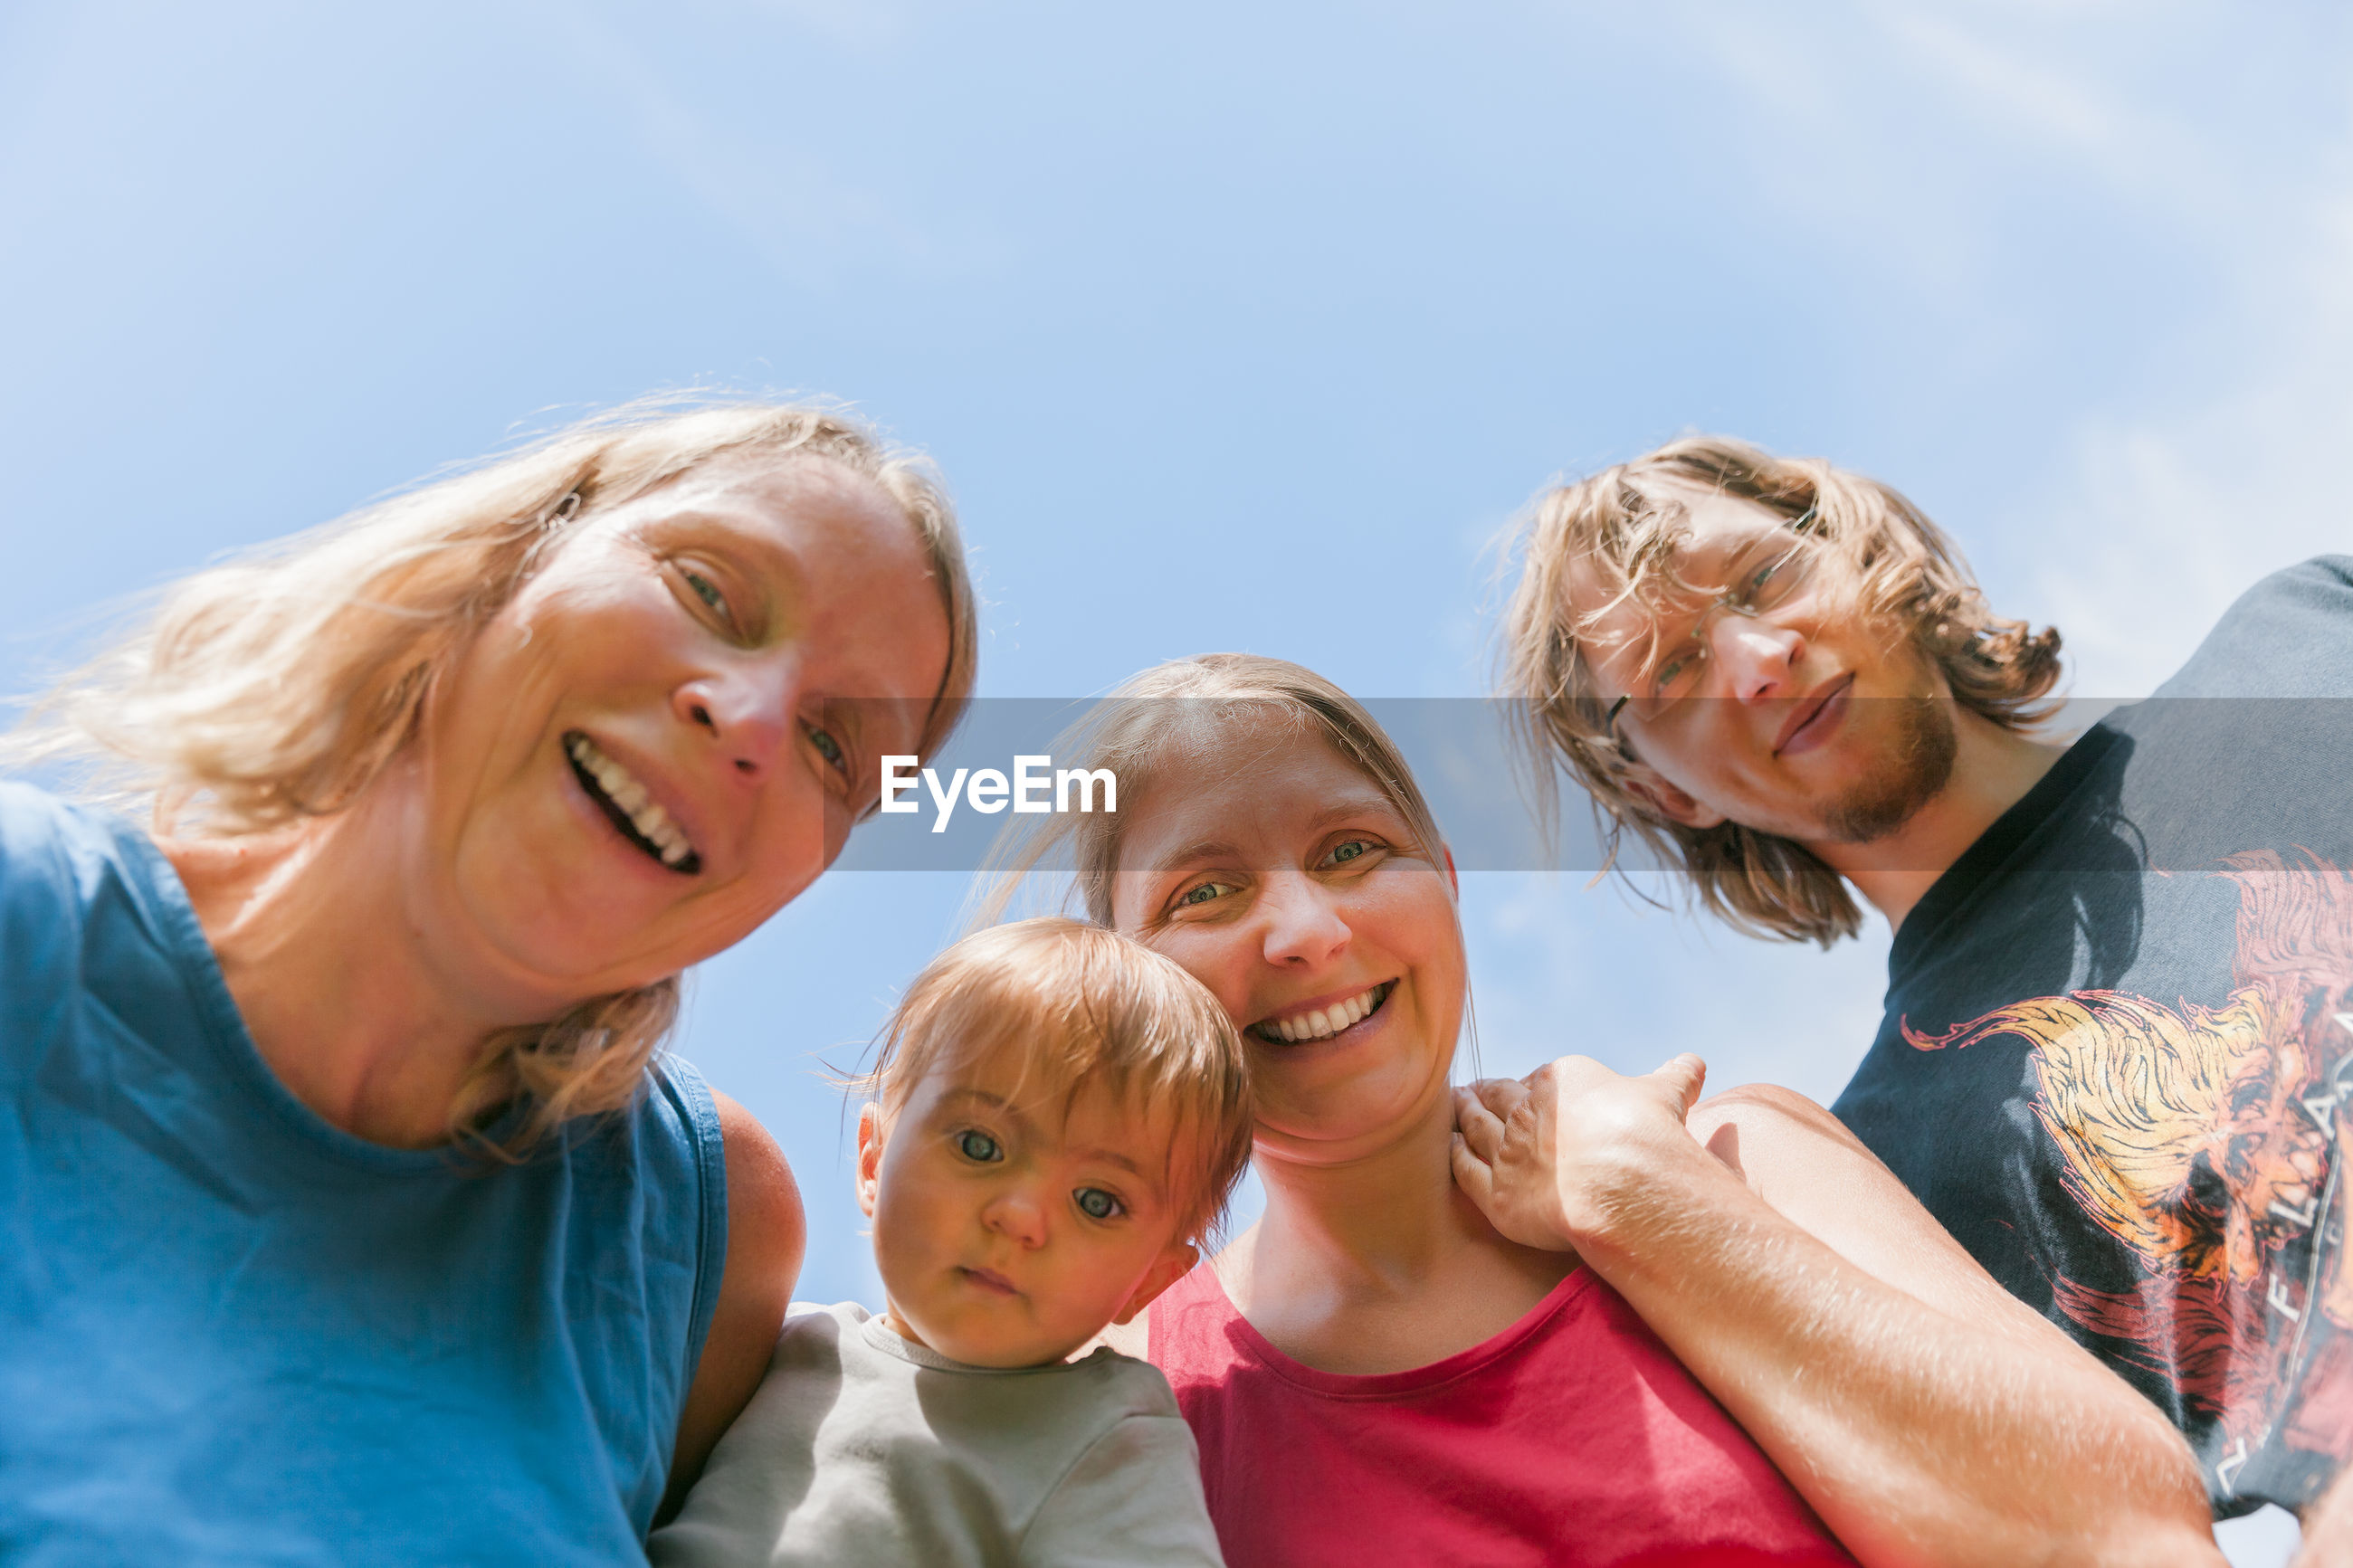 Low angle portrait of family against sky